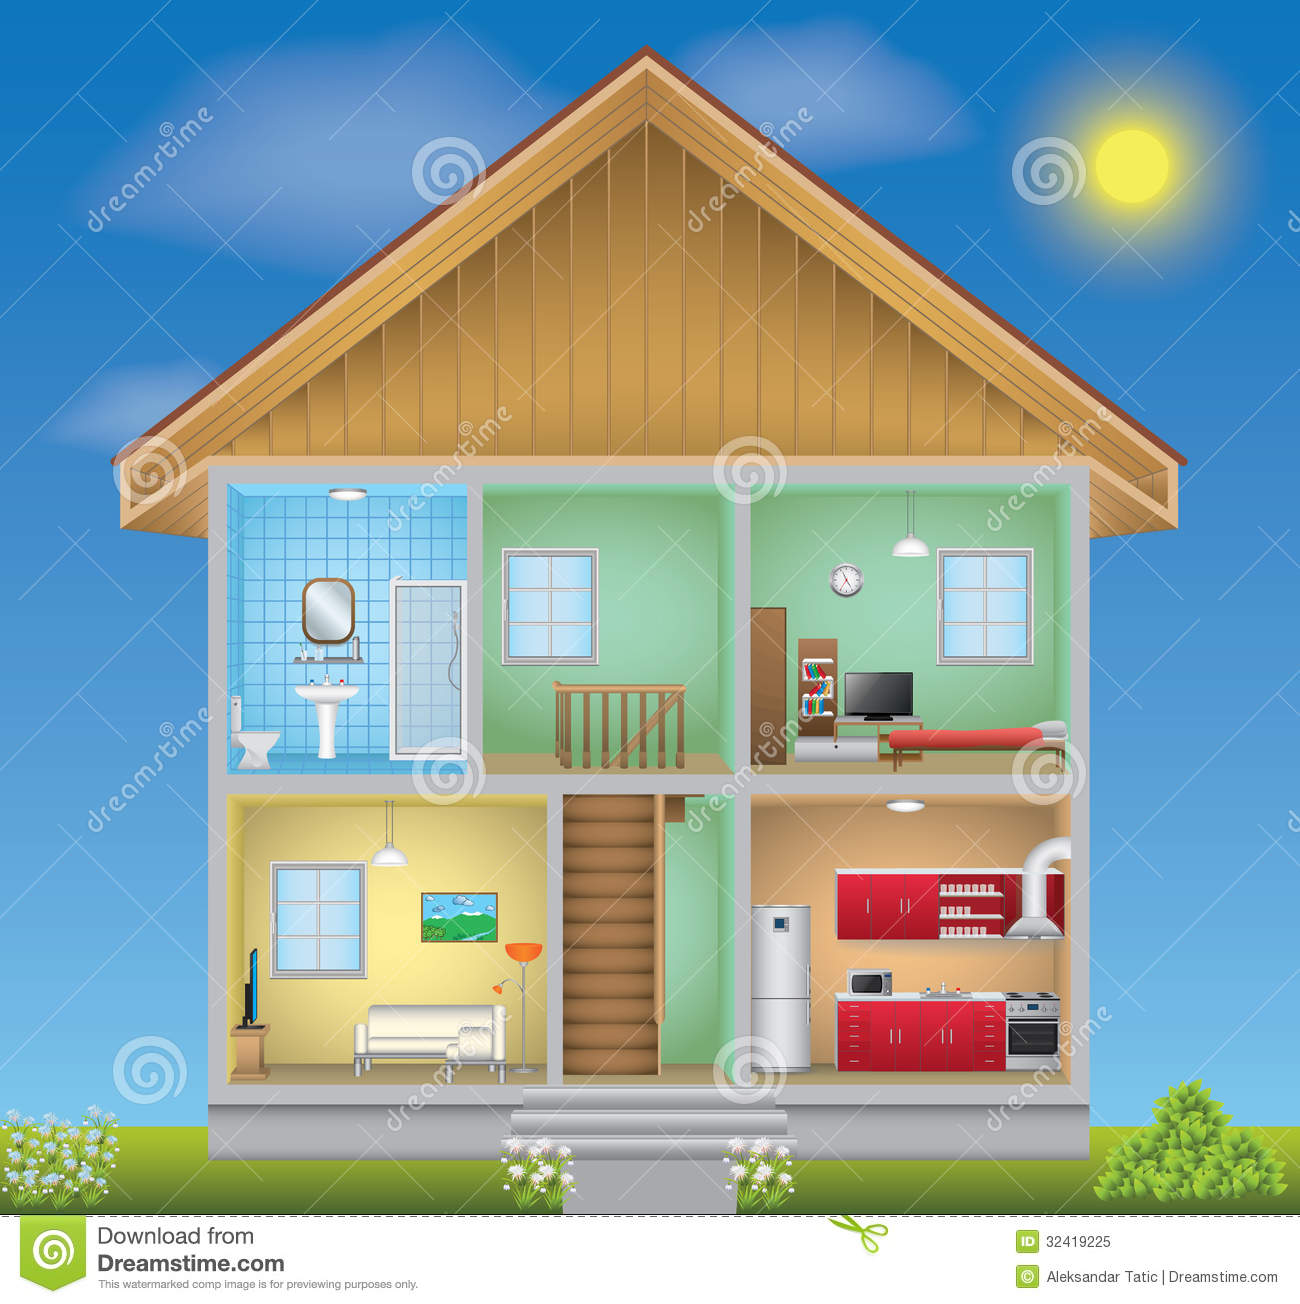 clipart inside house - photo #48